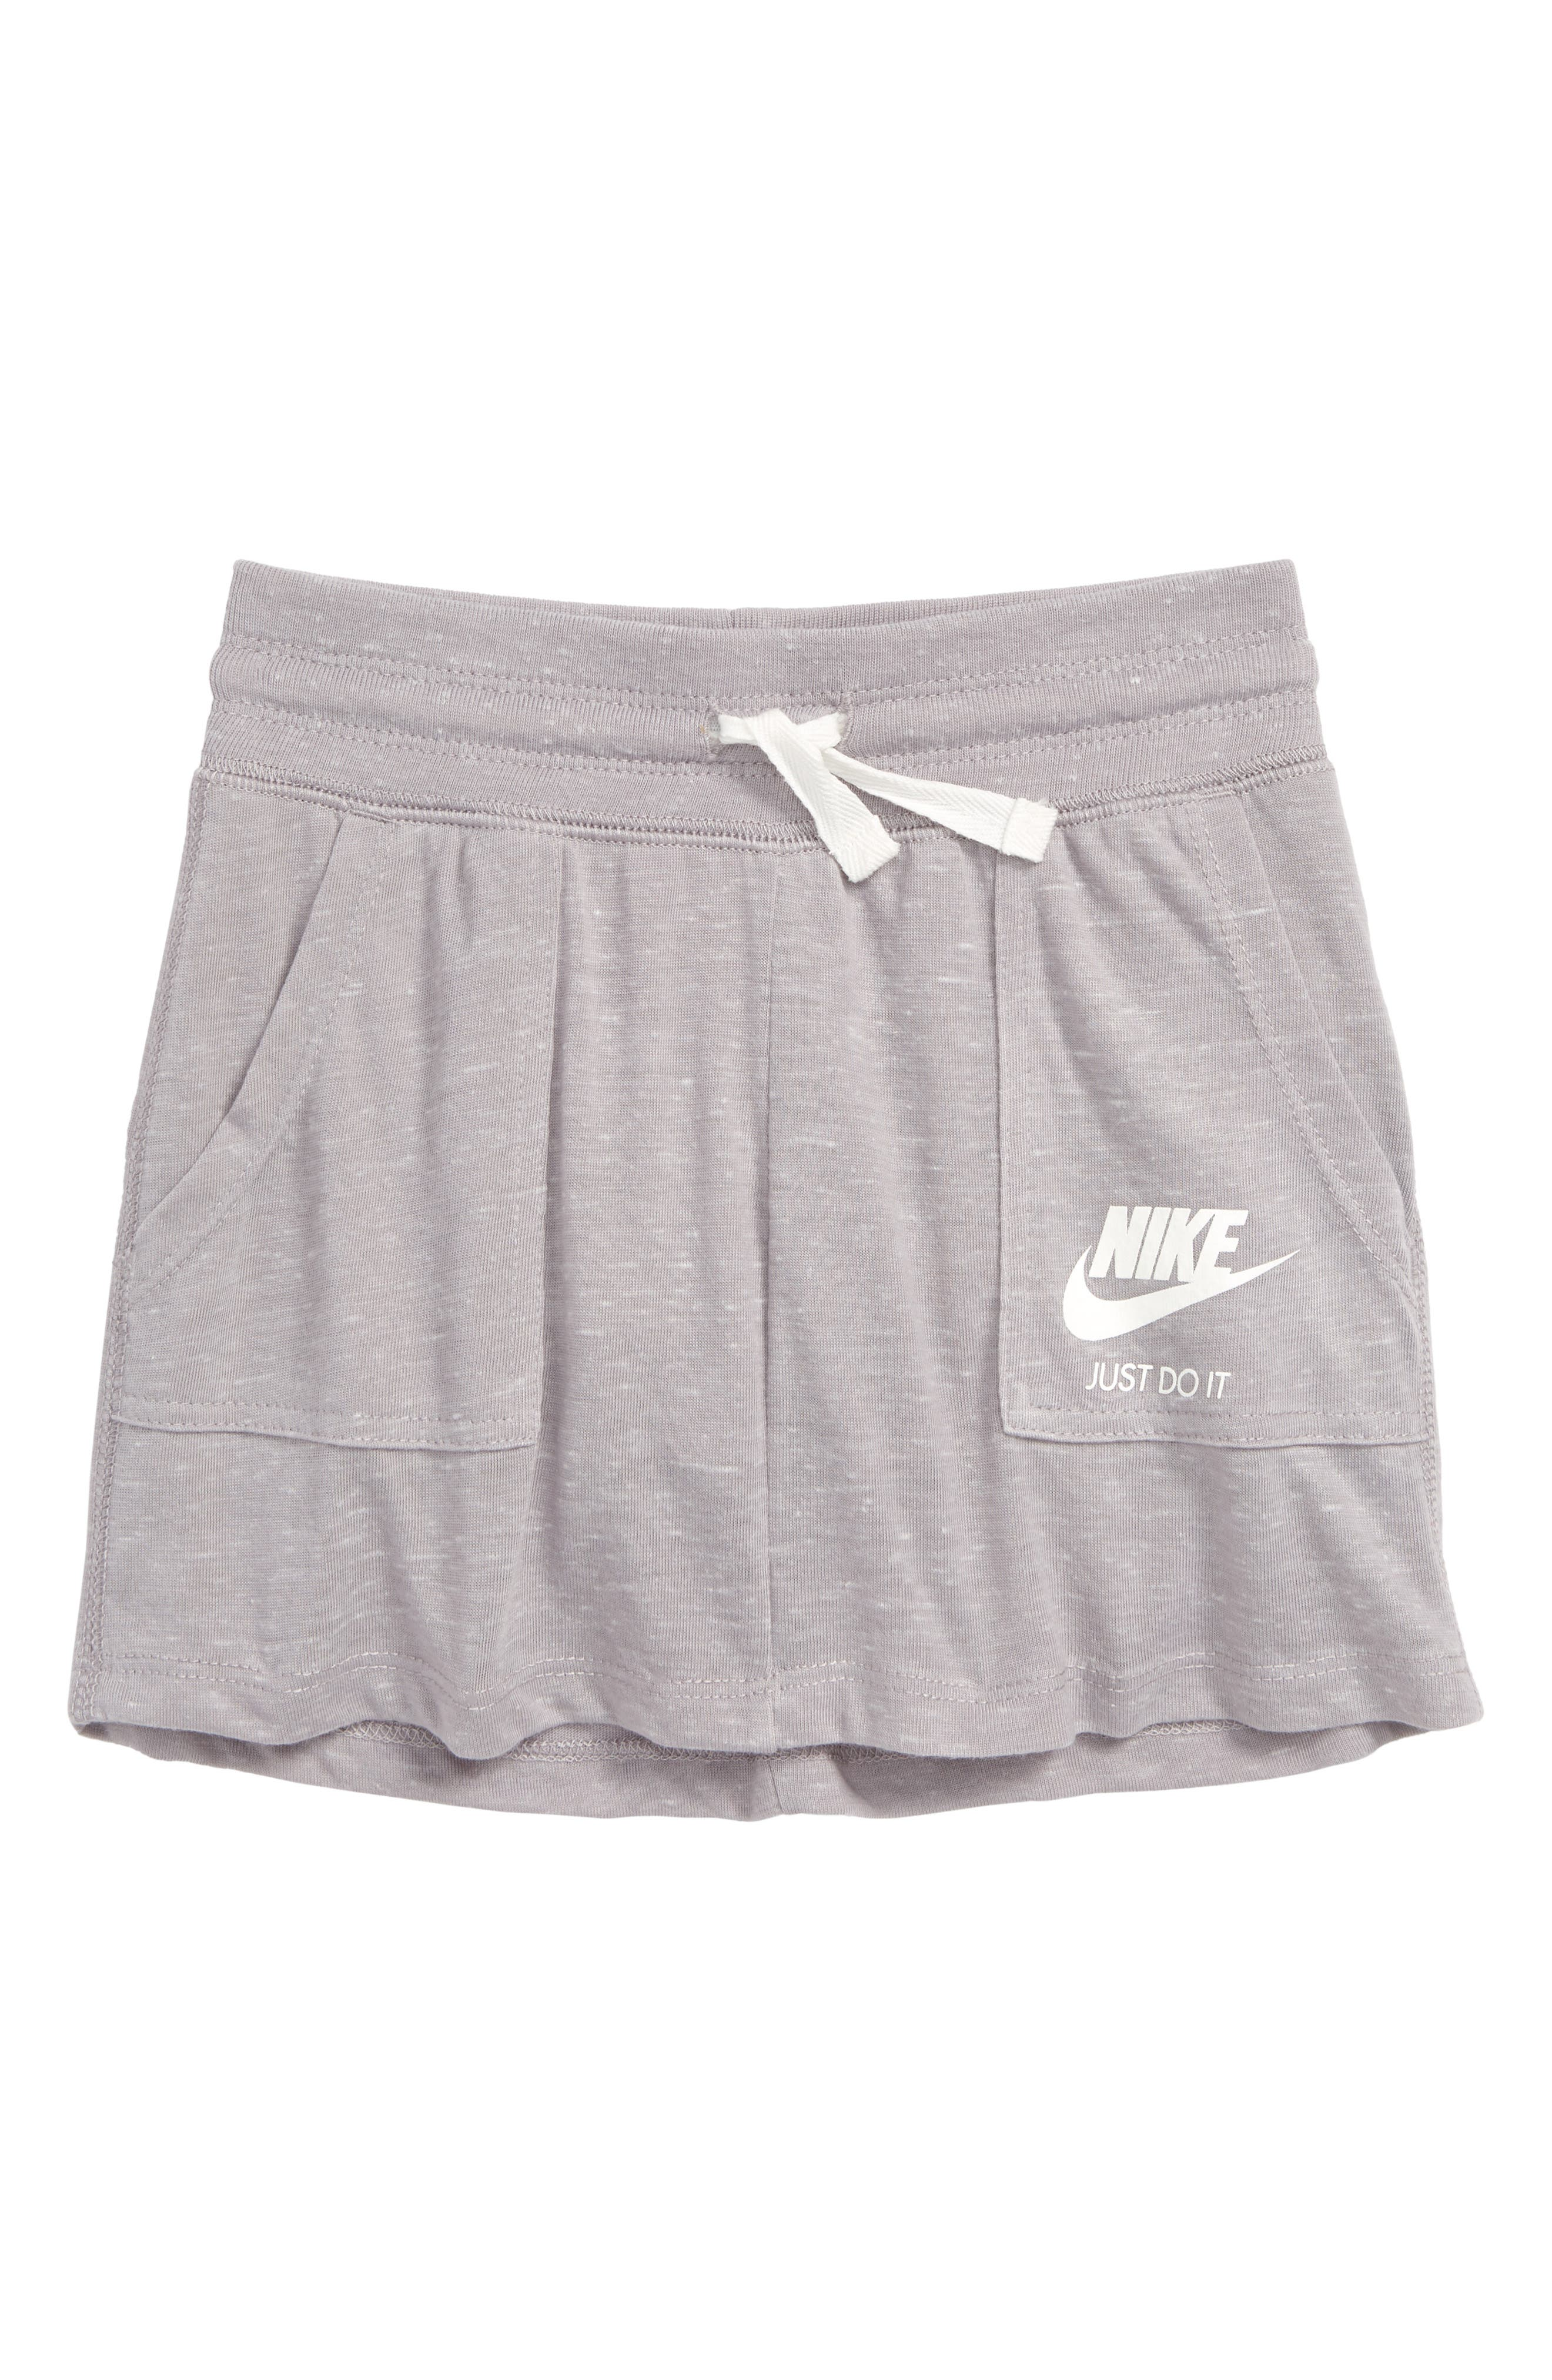 Gym Vintage Sport Skort,                         Main,                         color, 051